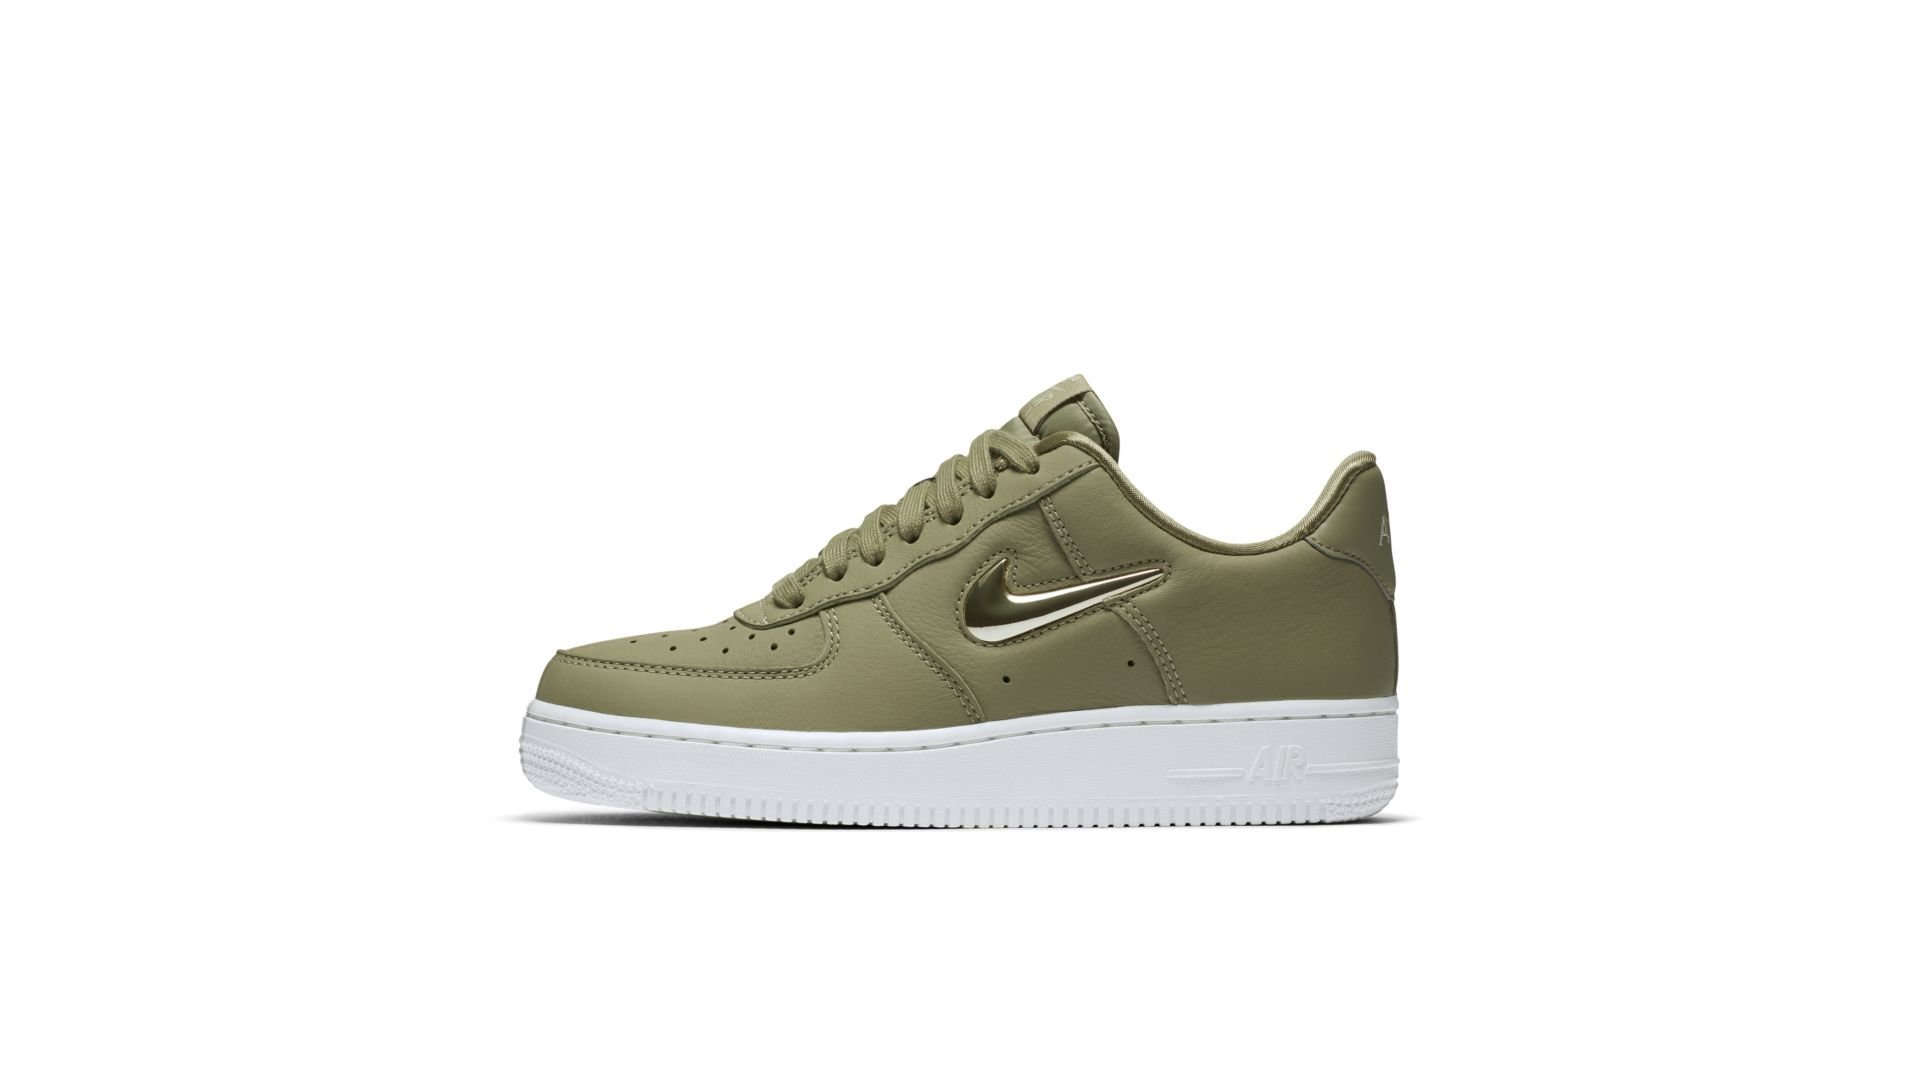 Nike Wmns Air Force 1 `07 Premium LX 'Olive' (AO3814-200)